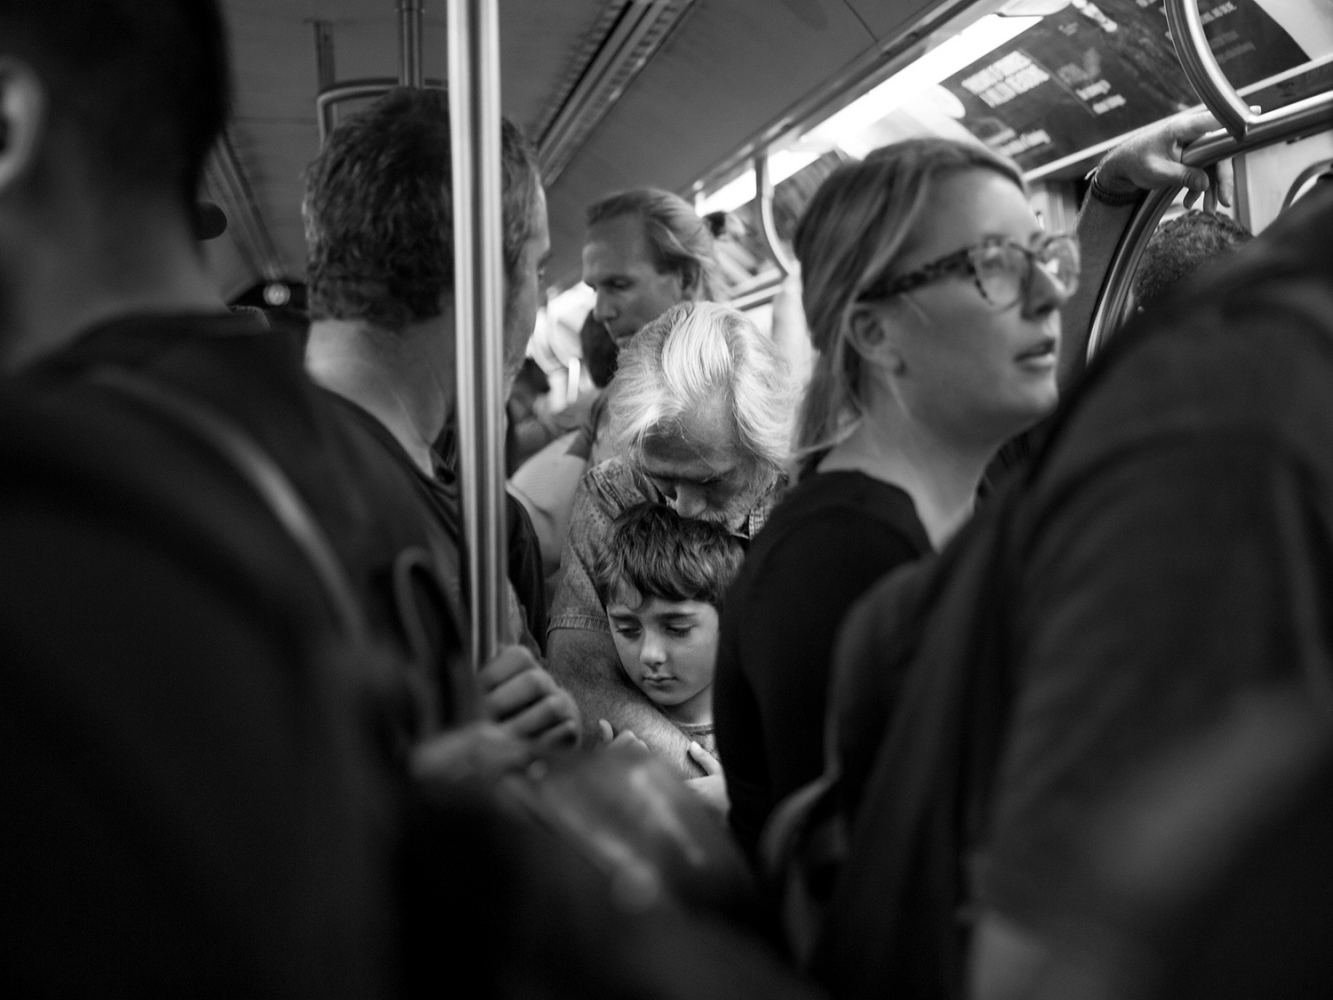 A father and son in the subway, New York, 2017.